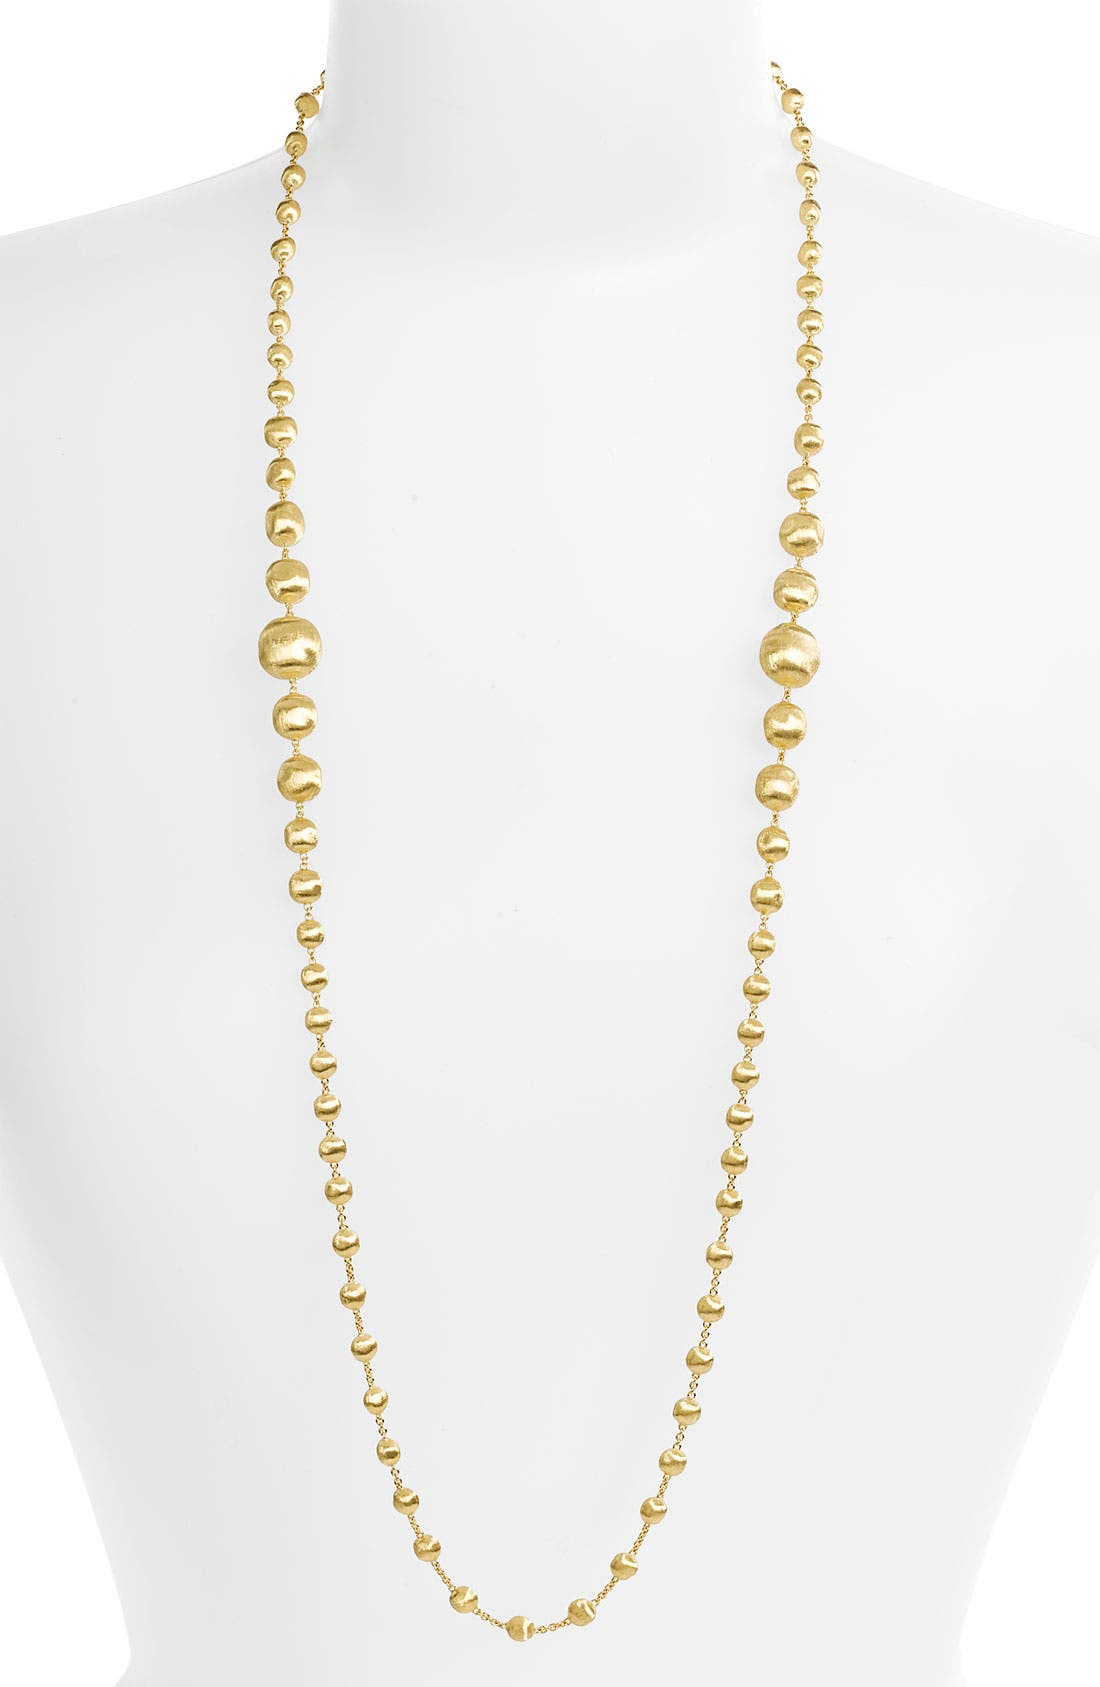 Alternate Image 1 Selected - Marco Bicego 'Africa Gold' Graduated Long Strand Necklace